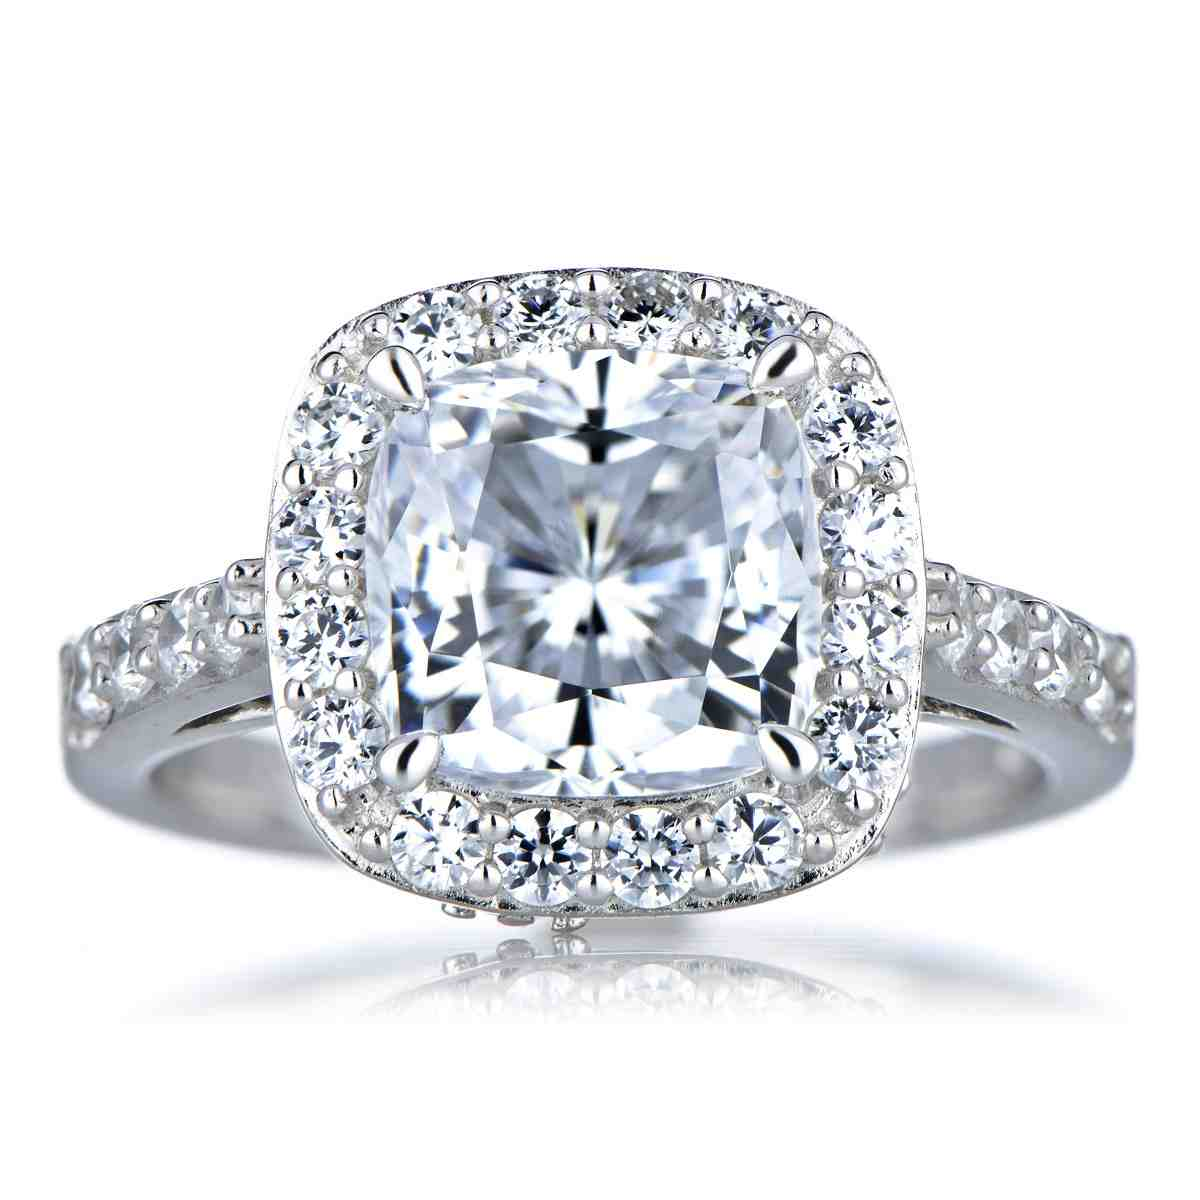 Cheap Diamonds Wedding Rings: Cheap Diamond Engagement Rings: Guide To Finding